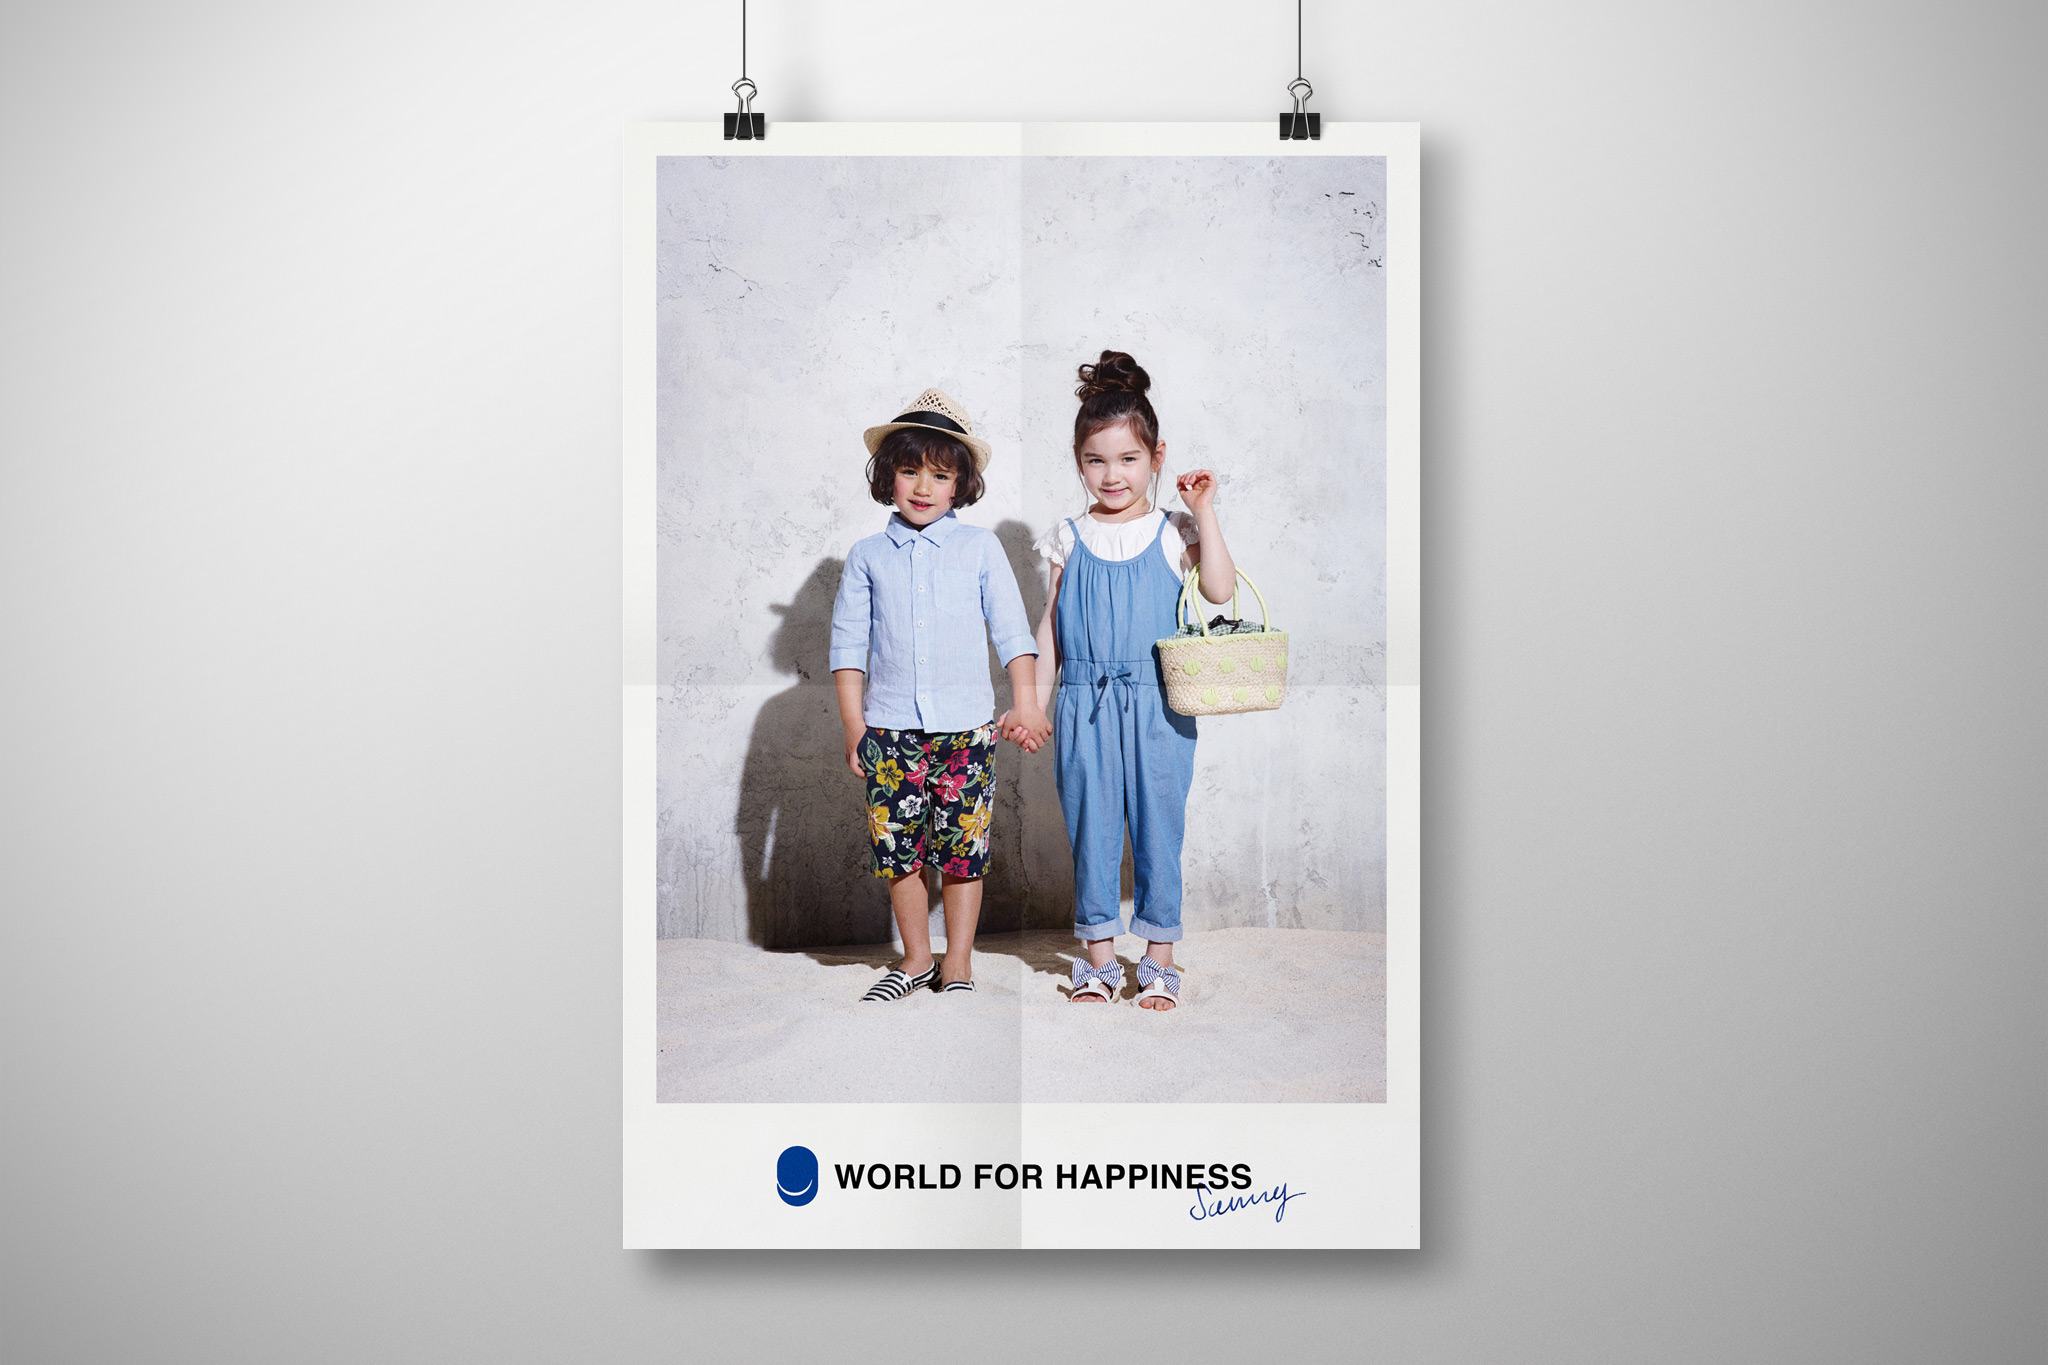 WORLD FOR HAPPINESS POSTER